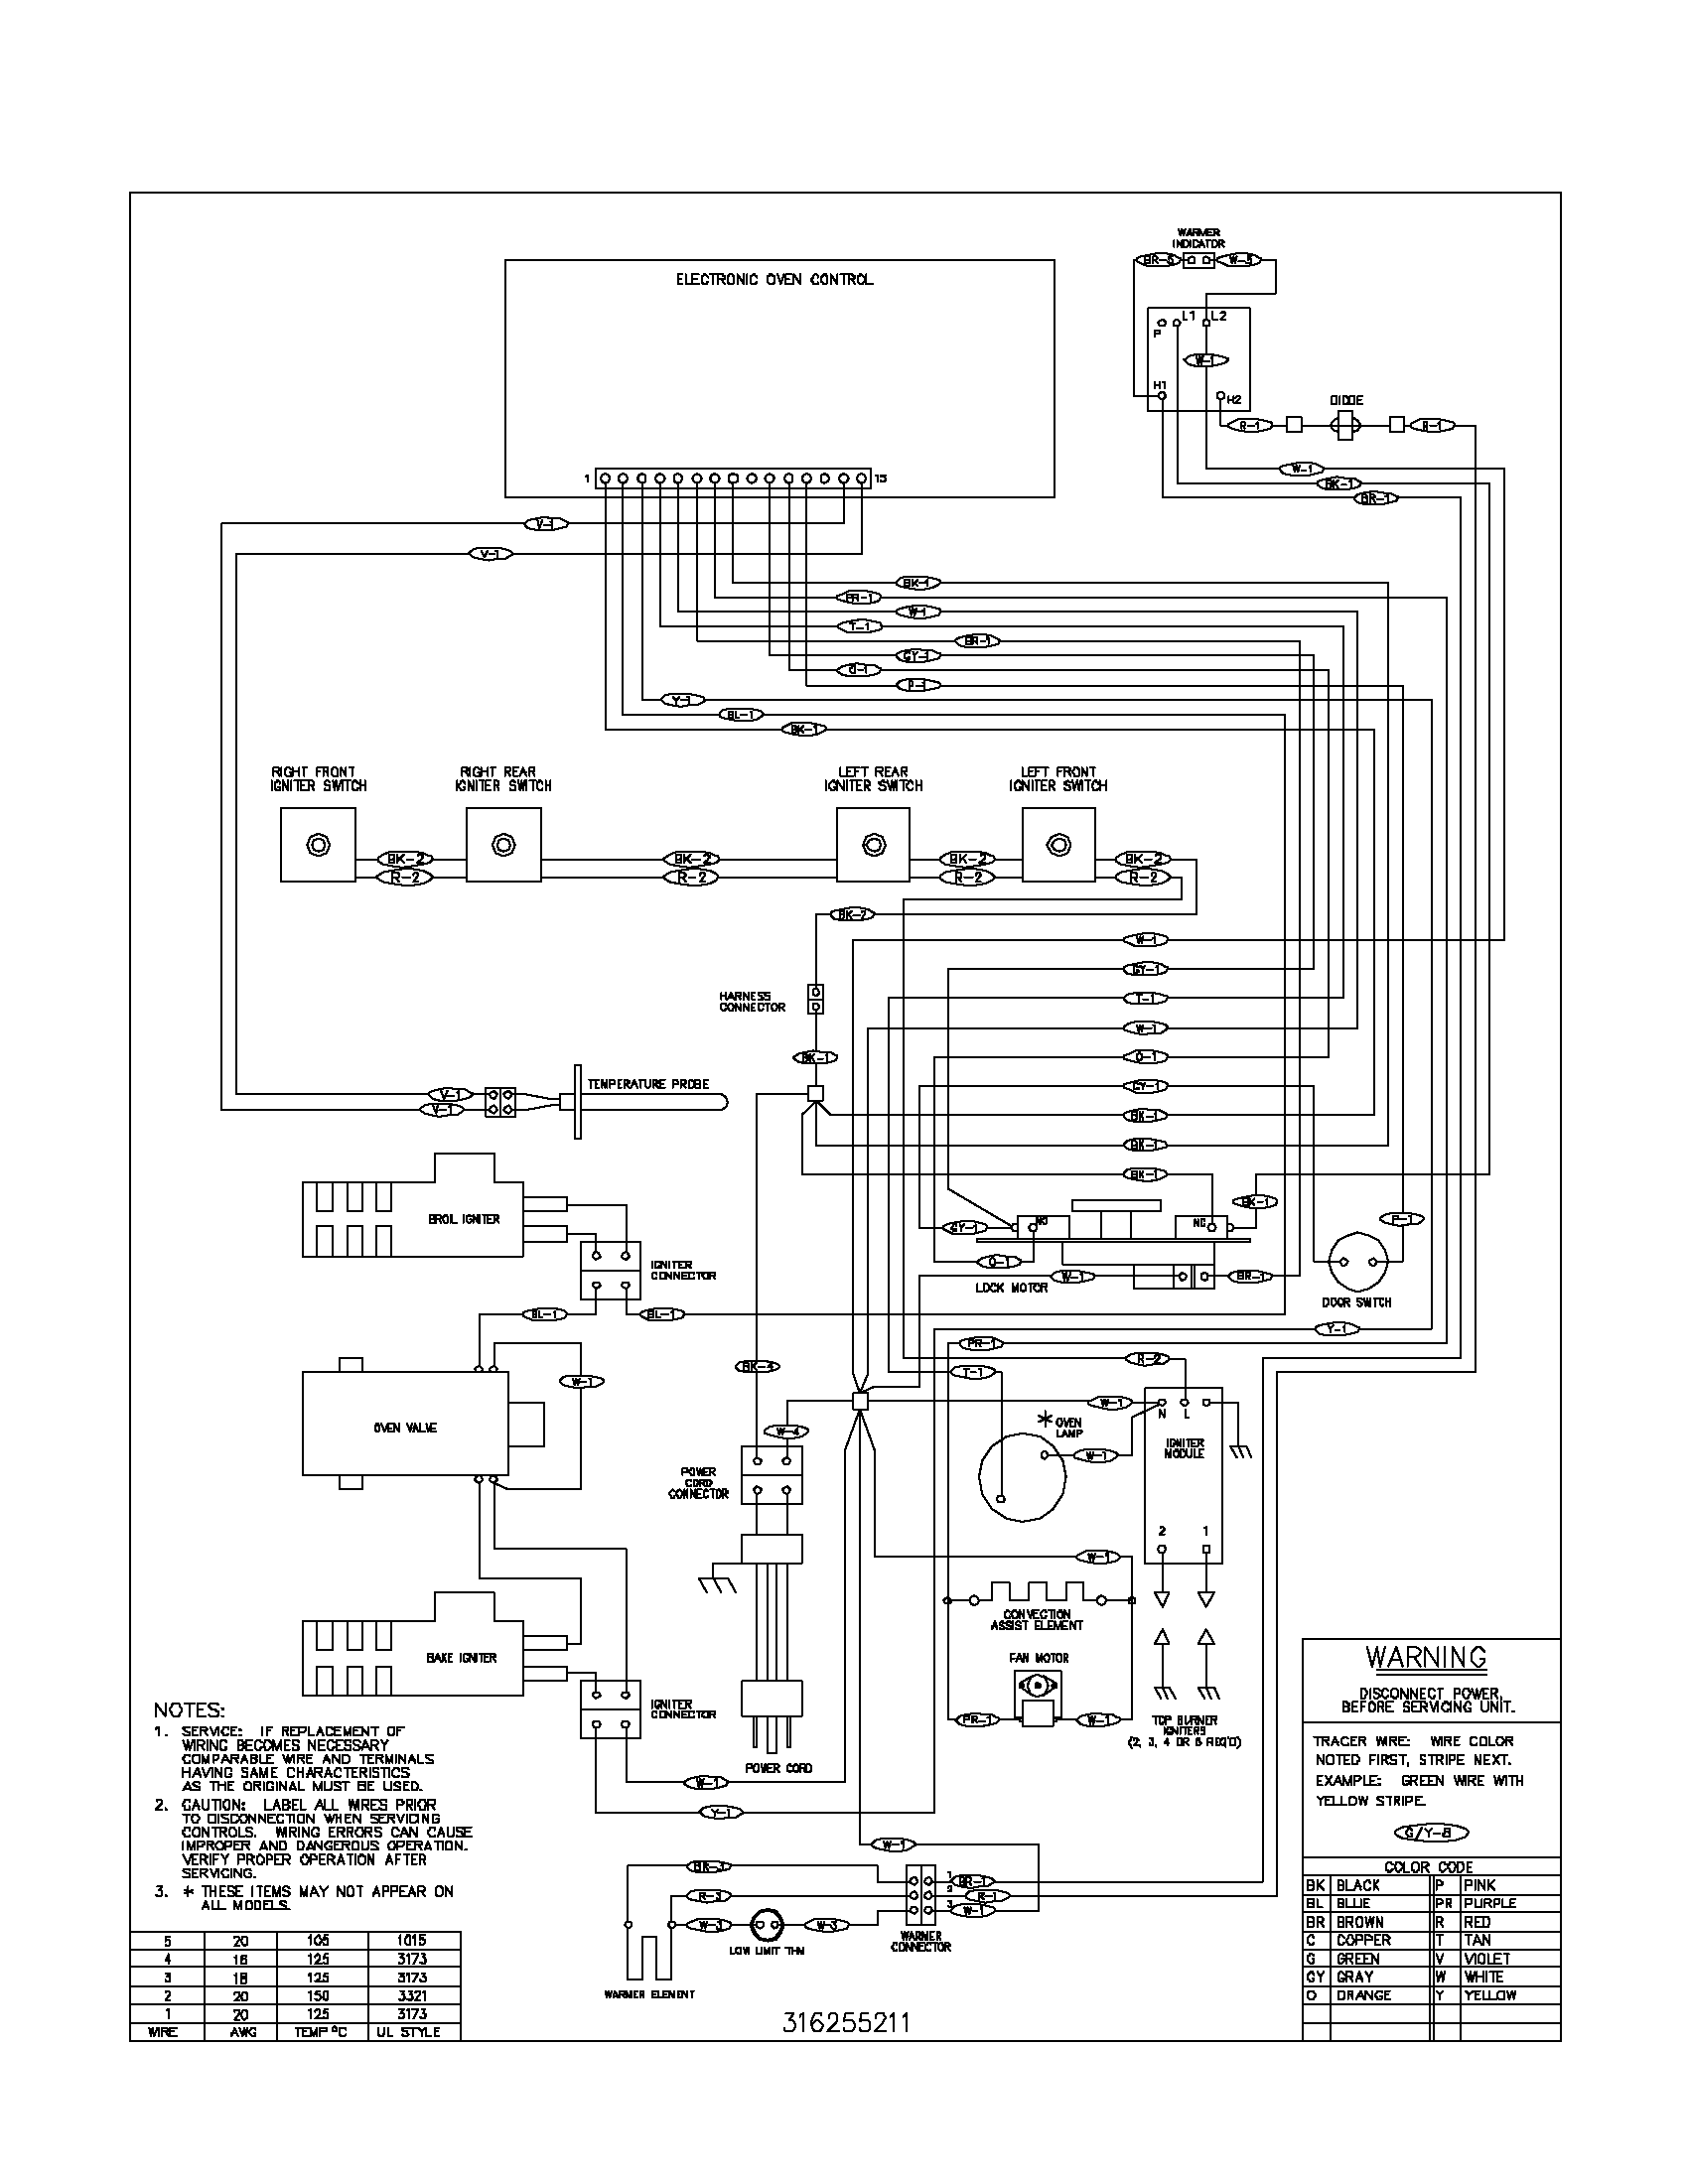 l3400 kubota wiring diagram free download wiring diagram rh alzaimunited com